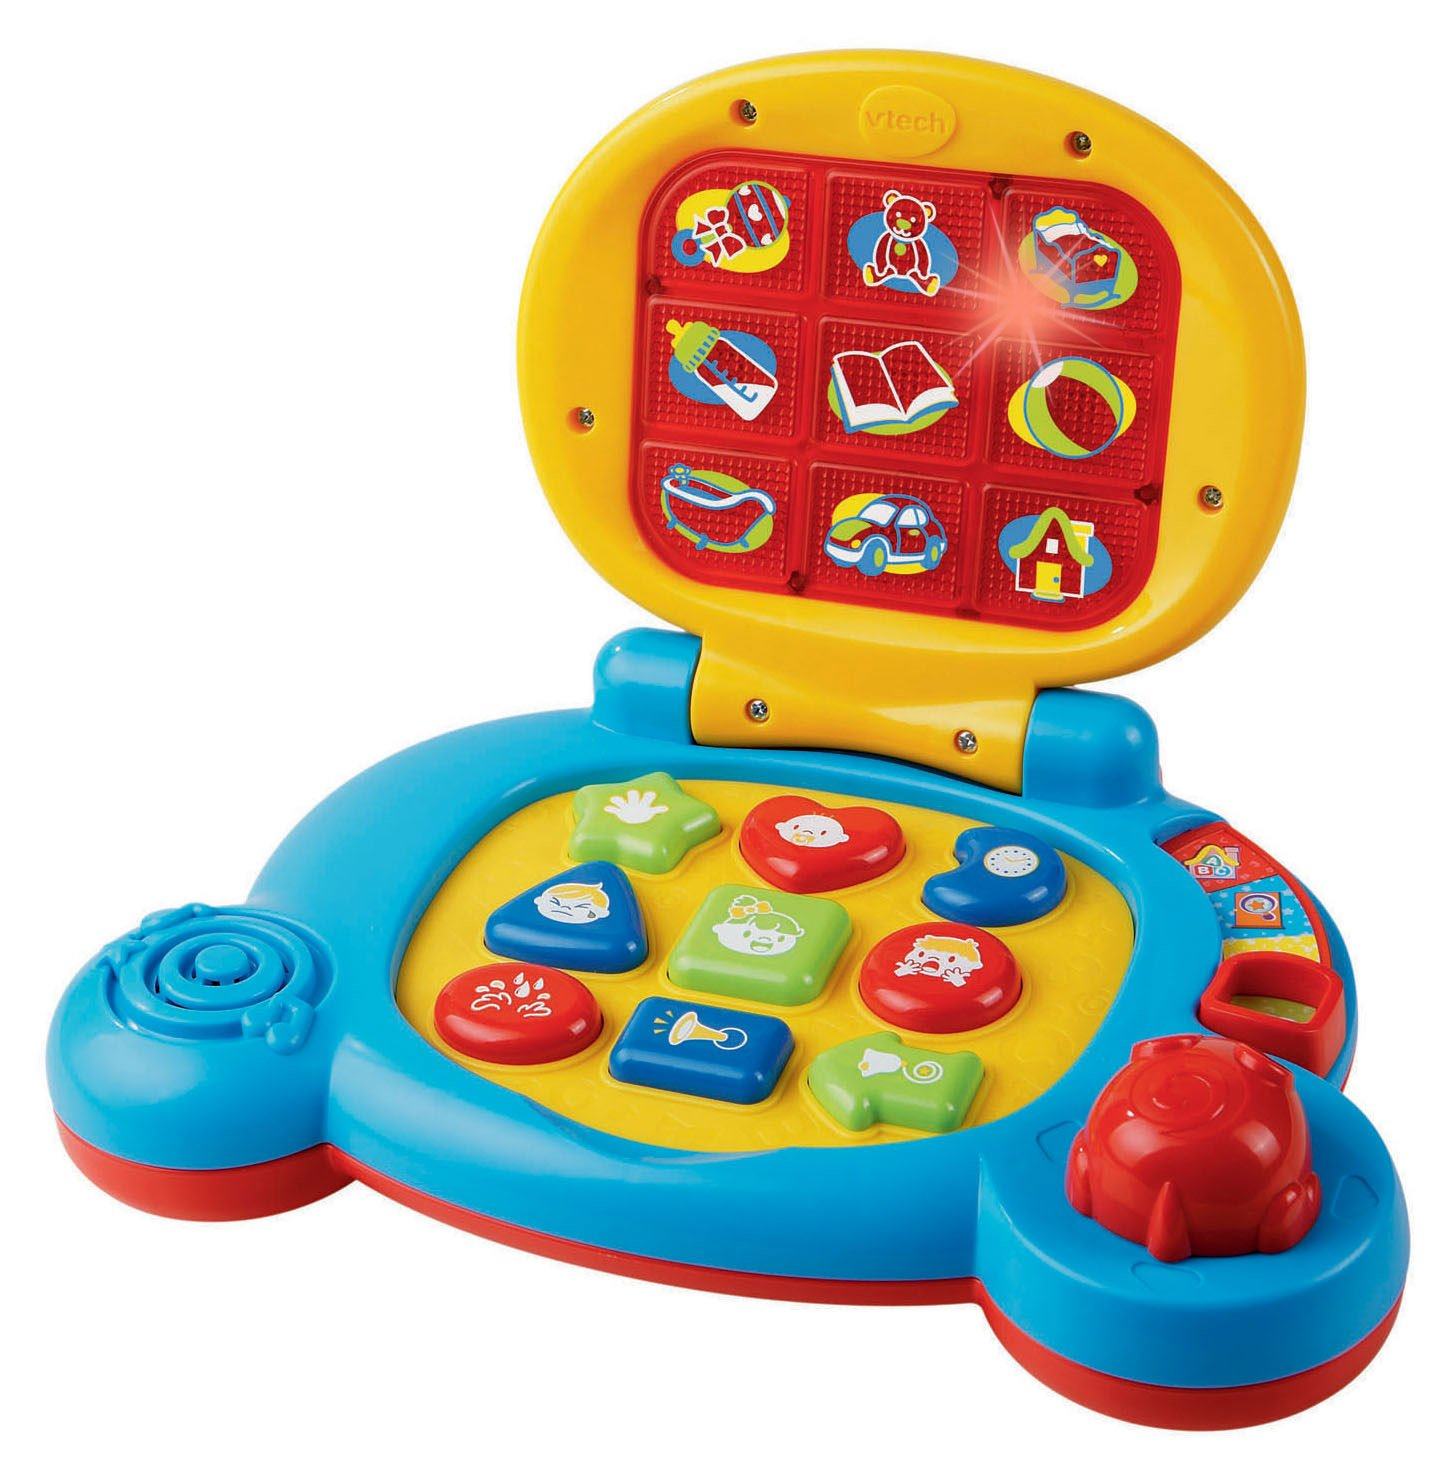 Image result for VTech Baby's Learning Laptop